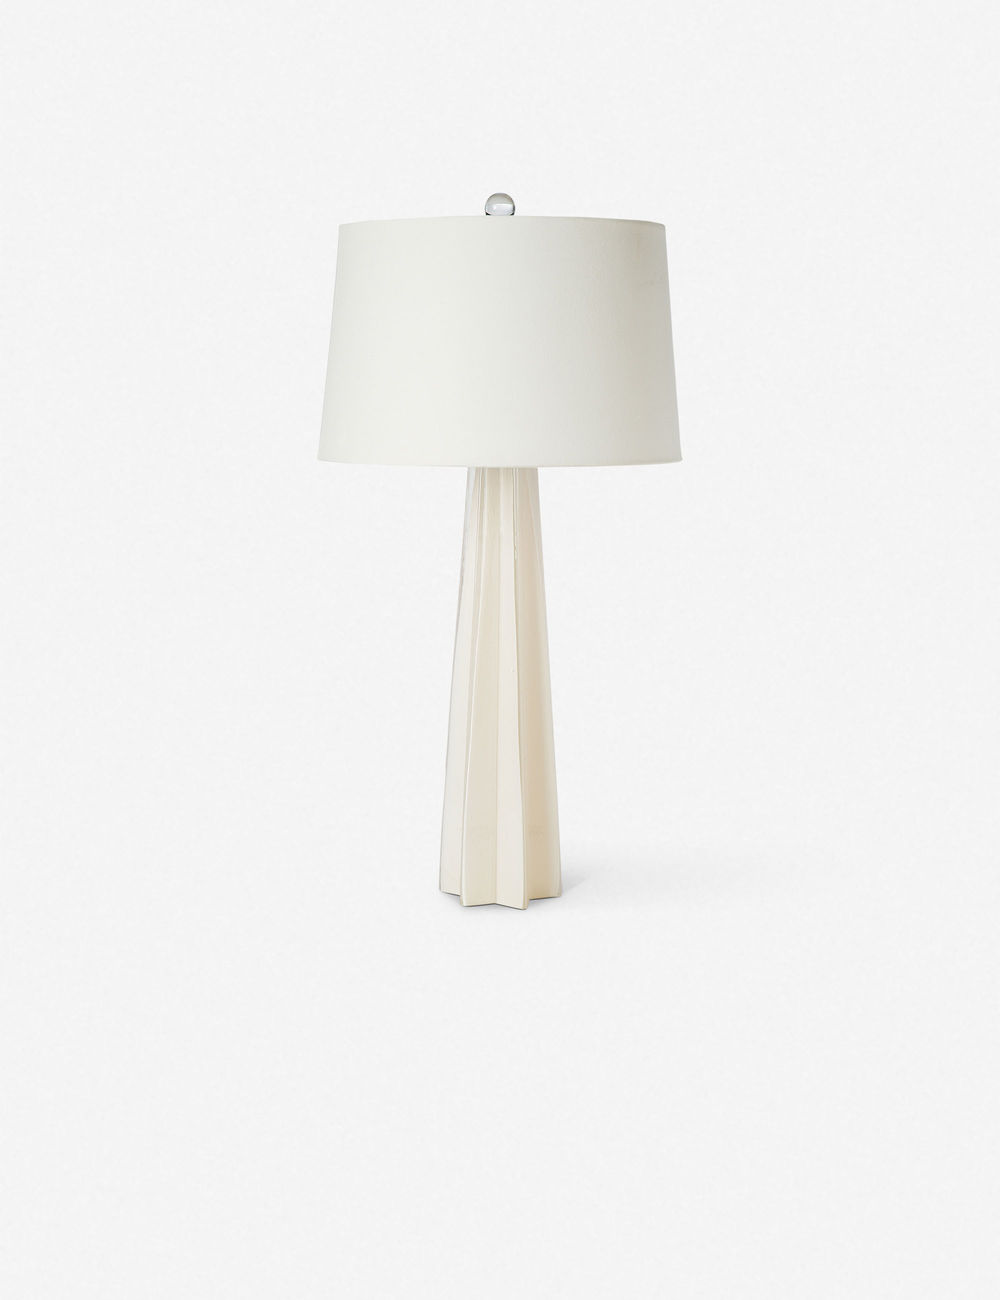 Klara Table Lamp Table Lamp White Table Lamp Lamp